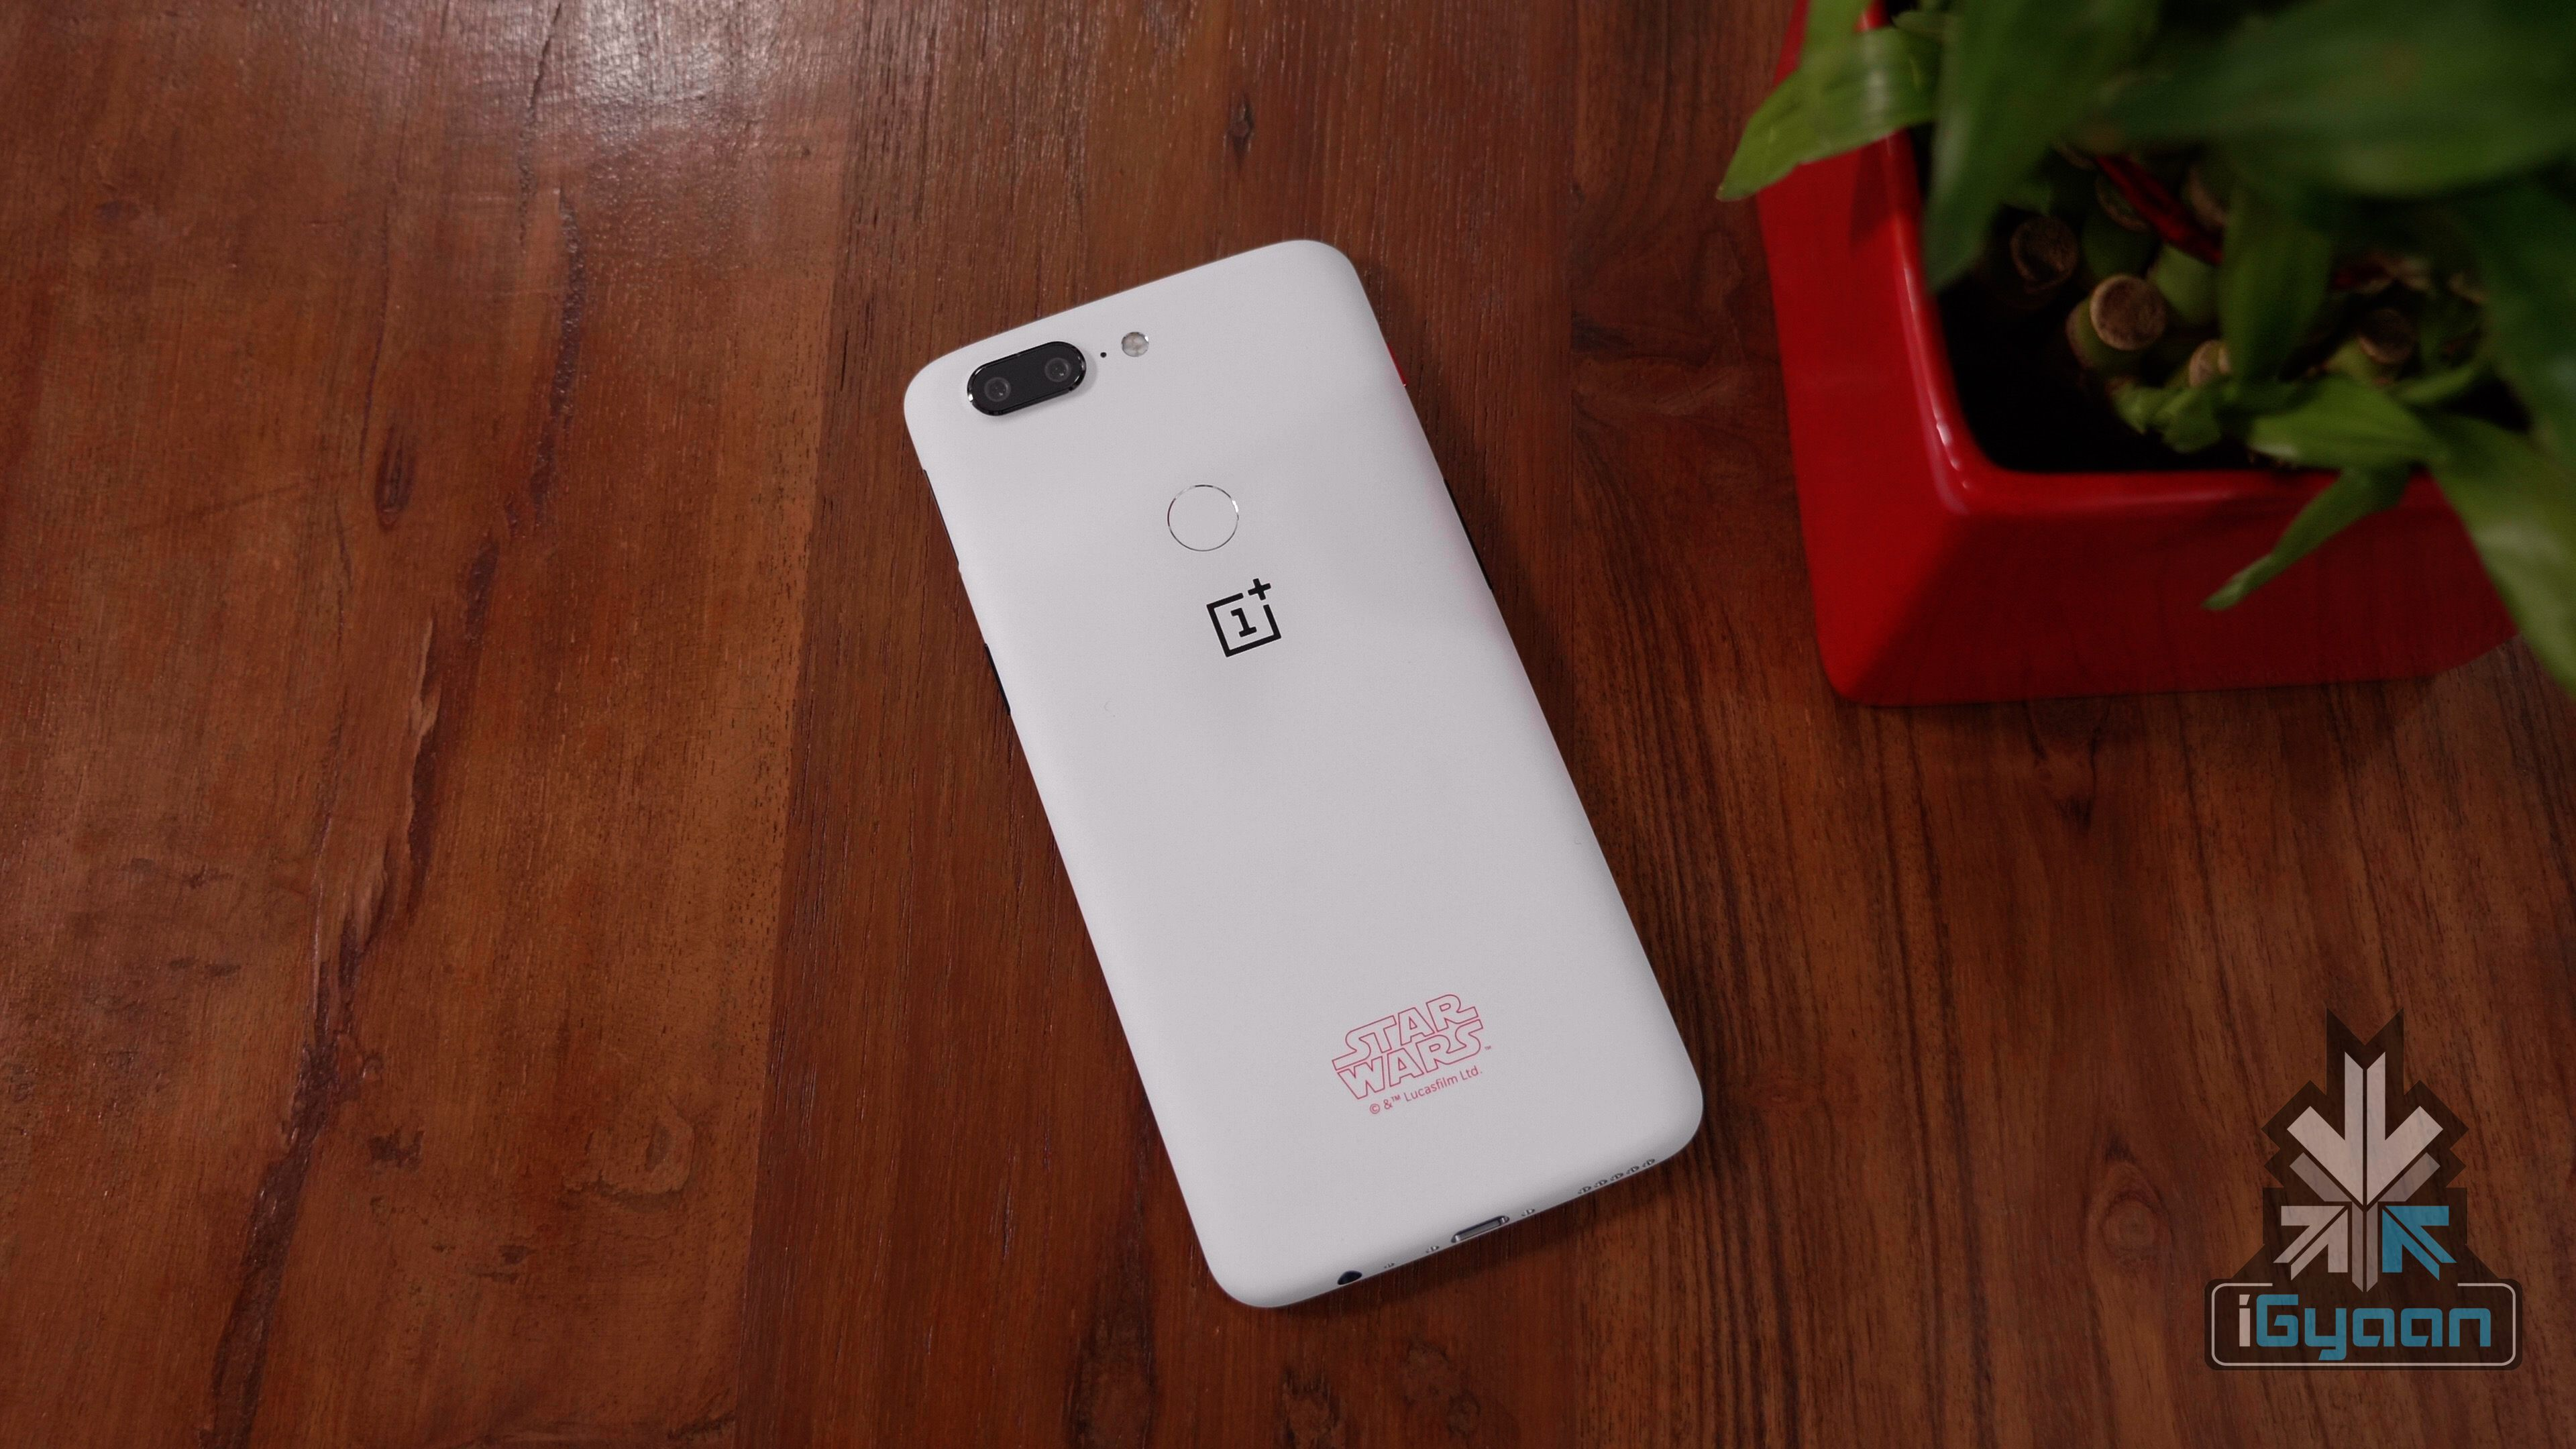 OnePlus 6 will be Amazon exclusive, reveals 'India teaser'